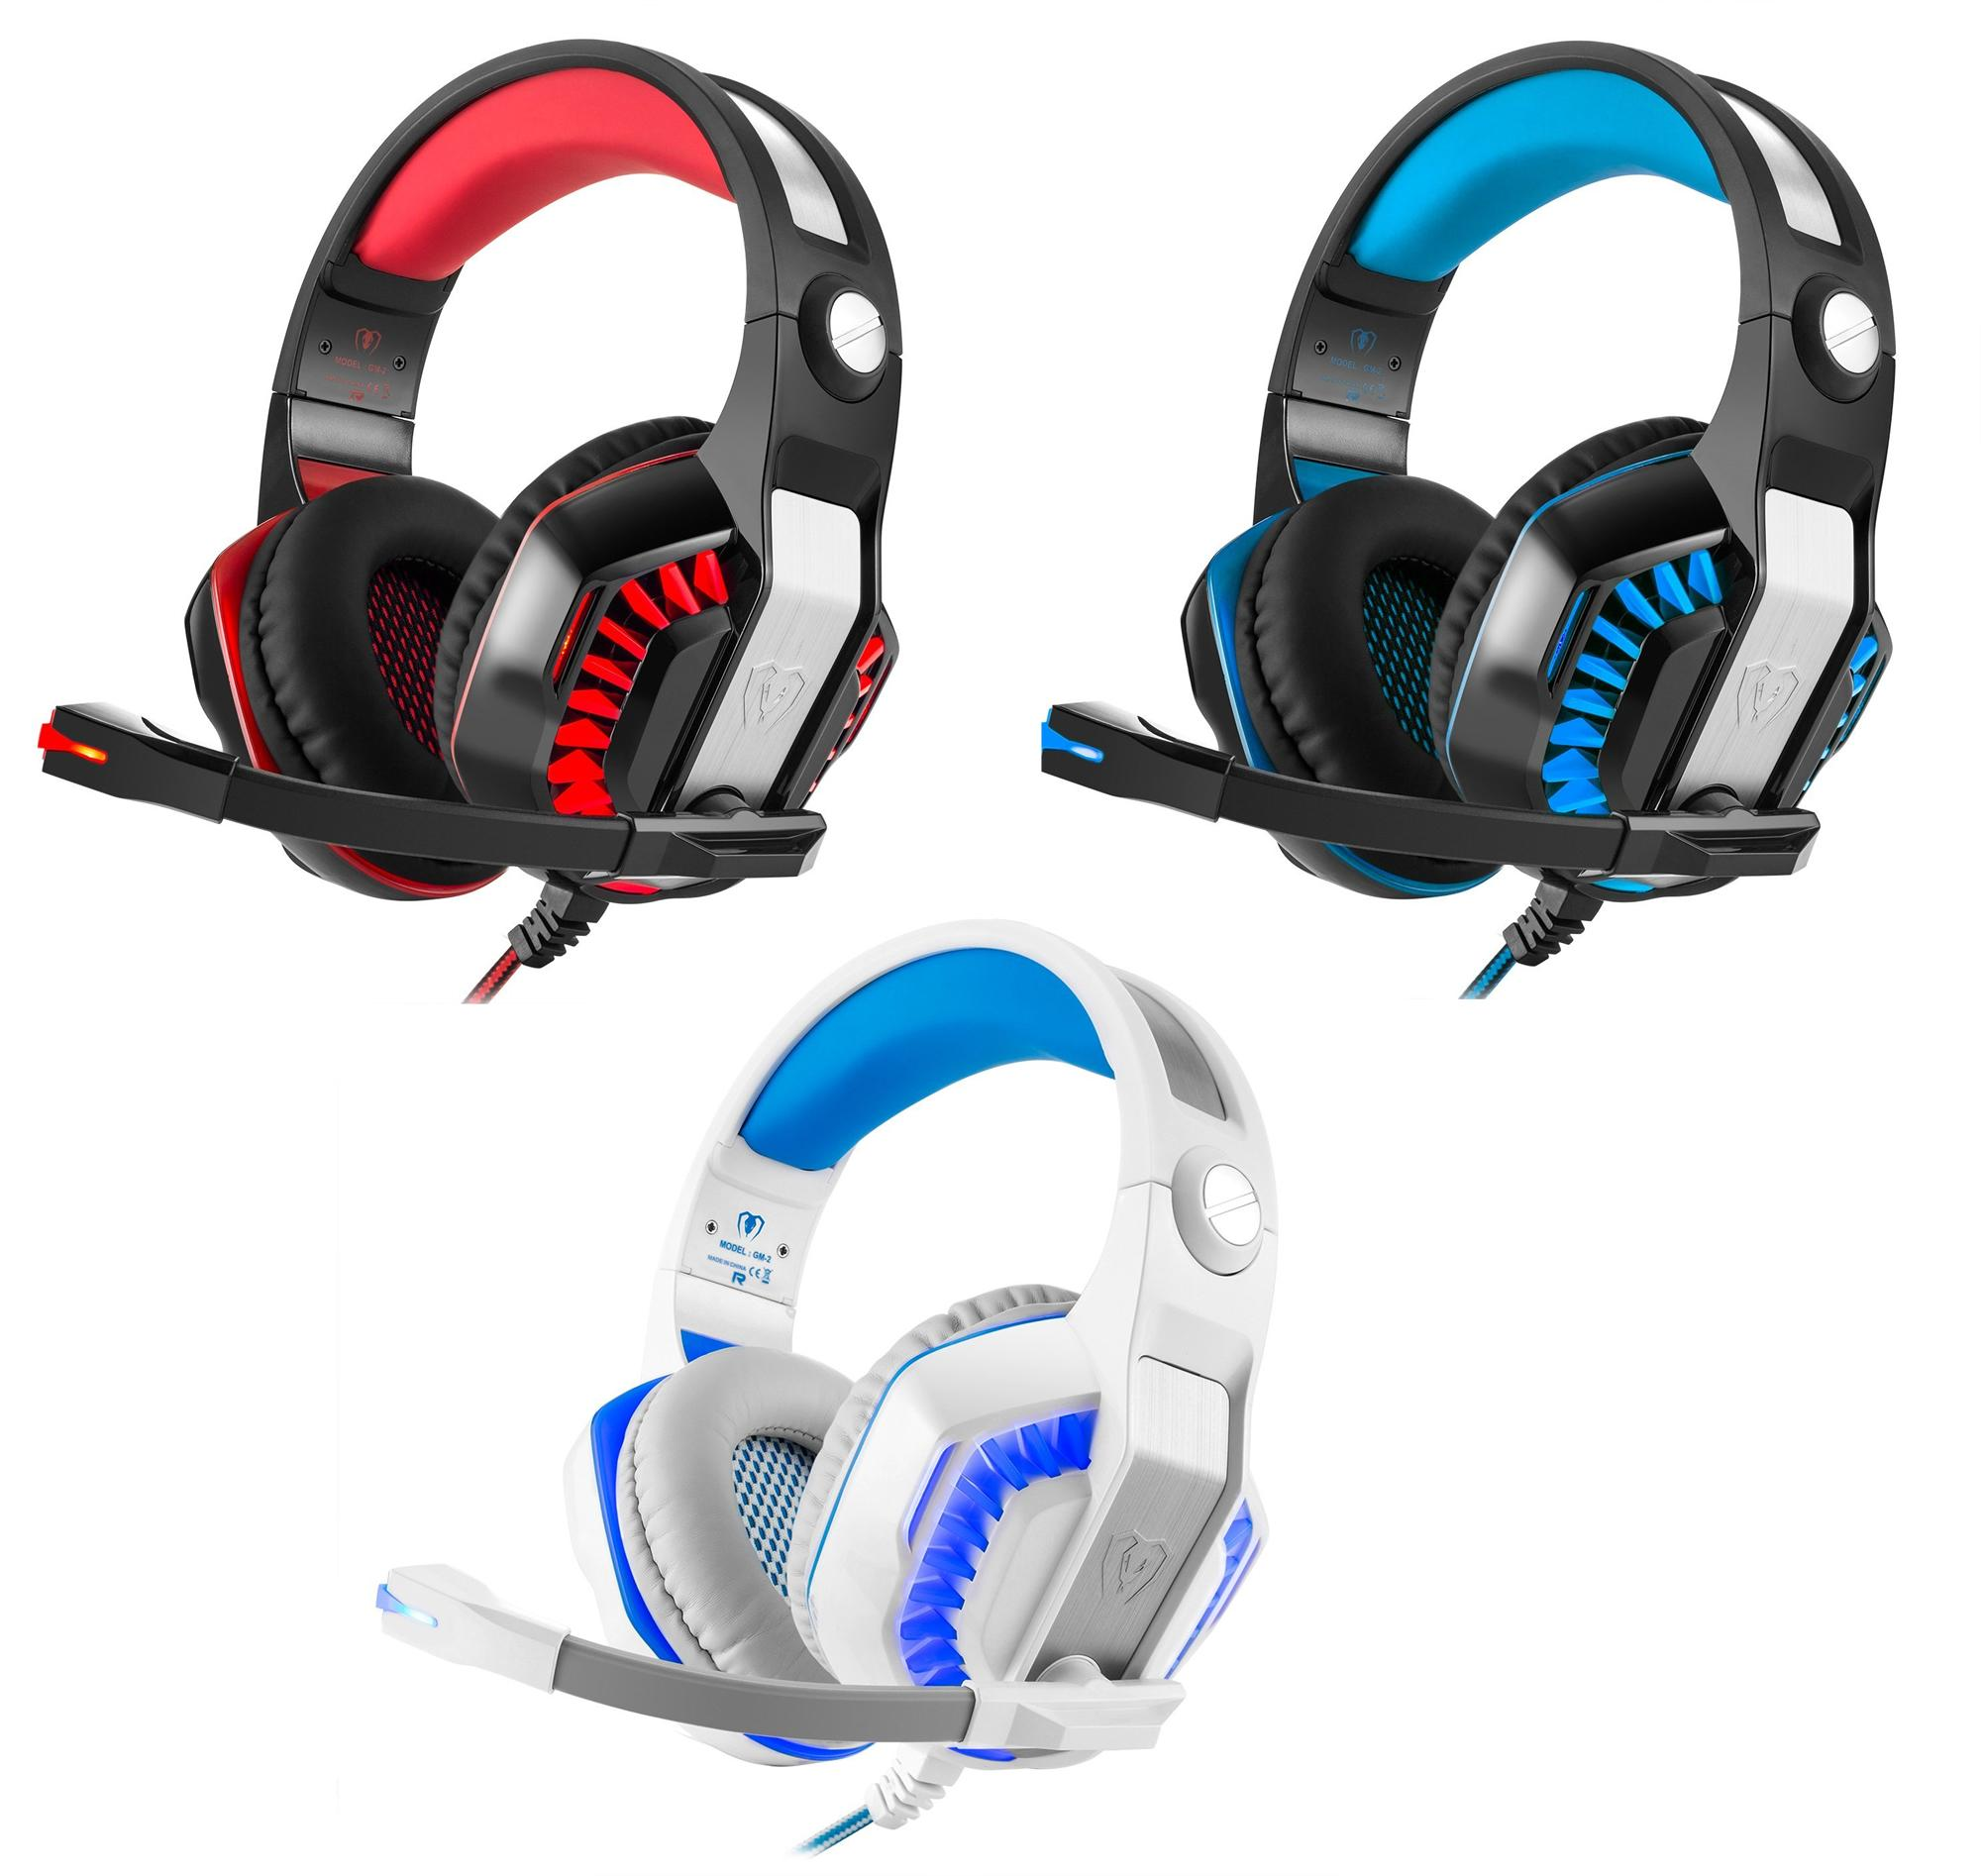 e7018e7c632 New Beexcellent GM 2 3.5mm PS4 Xbox One Gaming Headset,HotYet Over Ear  Stereo Headphones Turtle Beach Headsets Turtle Beach Headset From Wuyimei,  ...